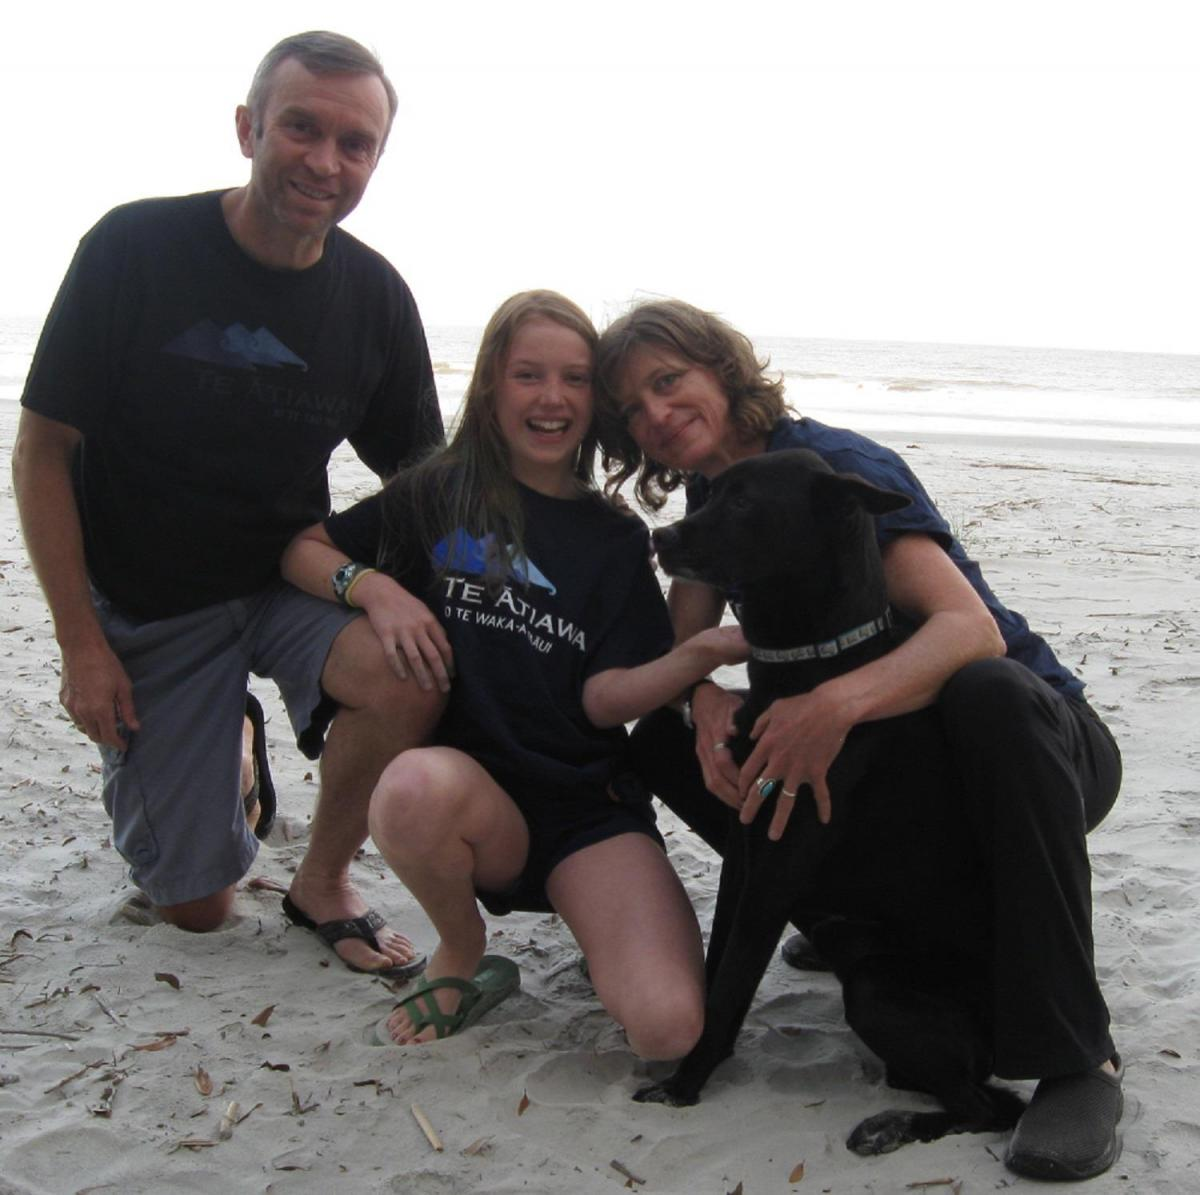 Te Atiawa Whānau - Hoodies & T-Shirts  - Bruce Hills, Lucie Aroha Hills, Susan Thompson & pet Katie - Hunting Island State Park, South Carolina, USA